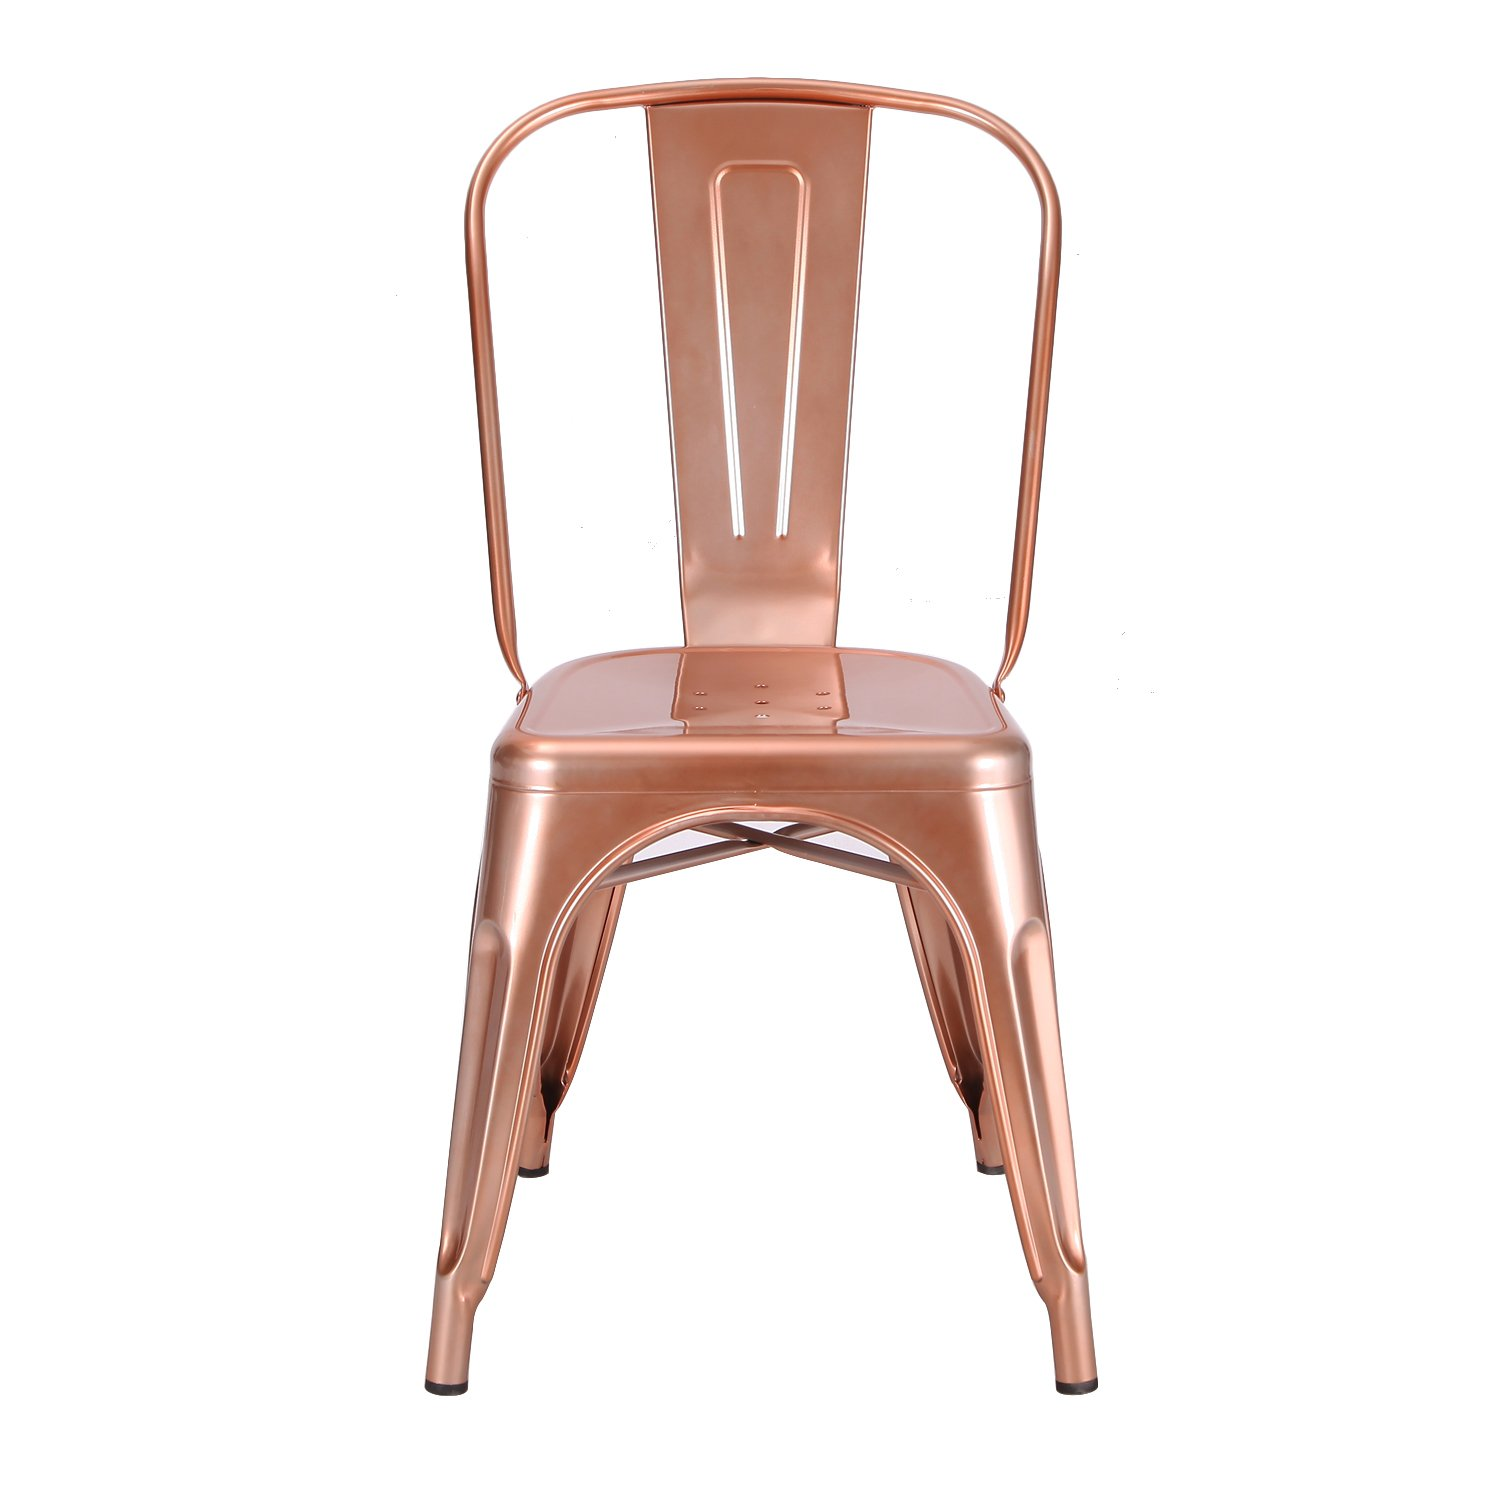 Adeco metal stackable industrial chic dining bistro cafe side chairs - Amazon Com Adeco Metal Stackable Industrial Chic Dining Bistro Cafe Side Chairs Glossy Rose Gold Set Of 2 Chairs